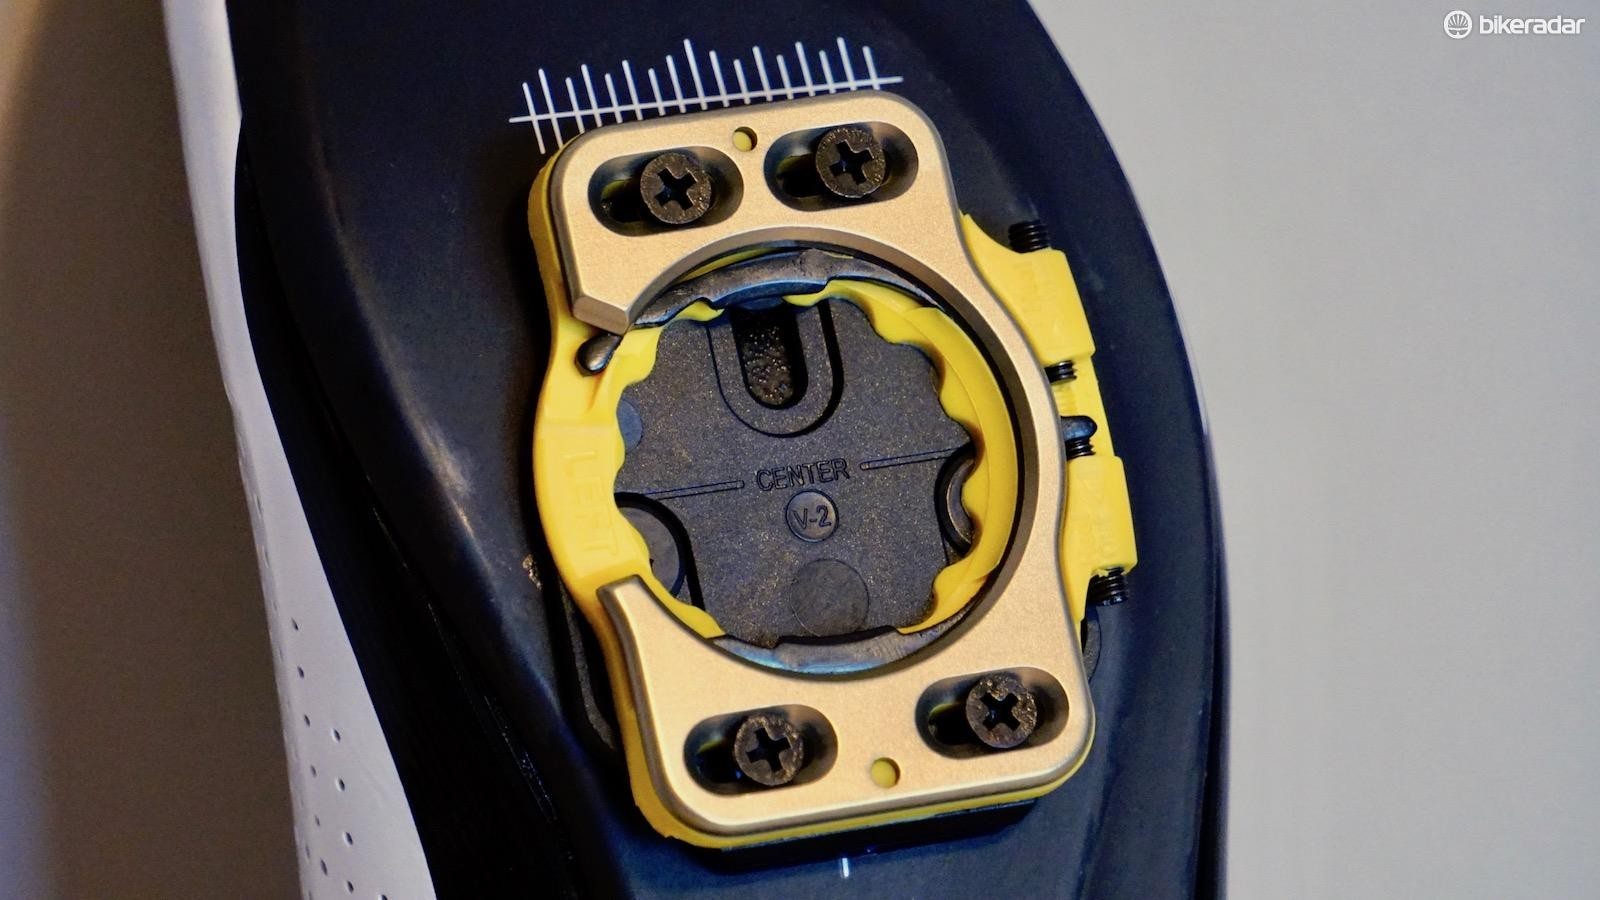 Every cleat has a line denoting the midpoint — this is a reference for setting up in relation to the MPJ of your choice